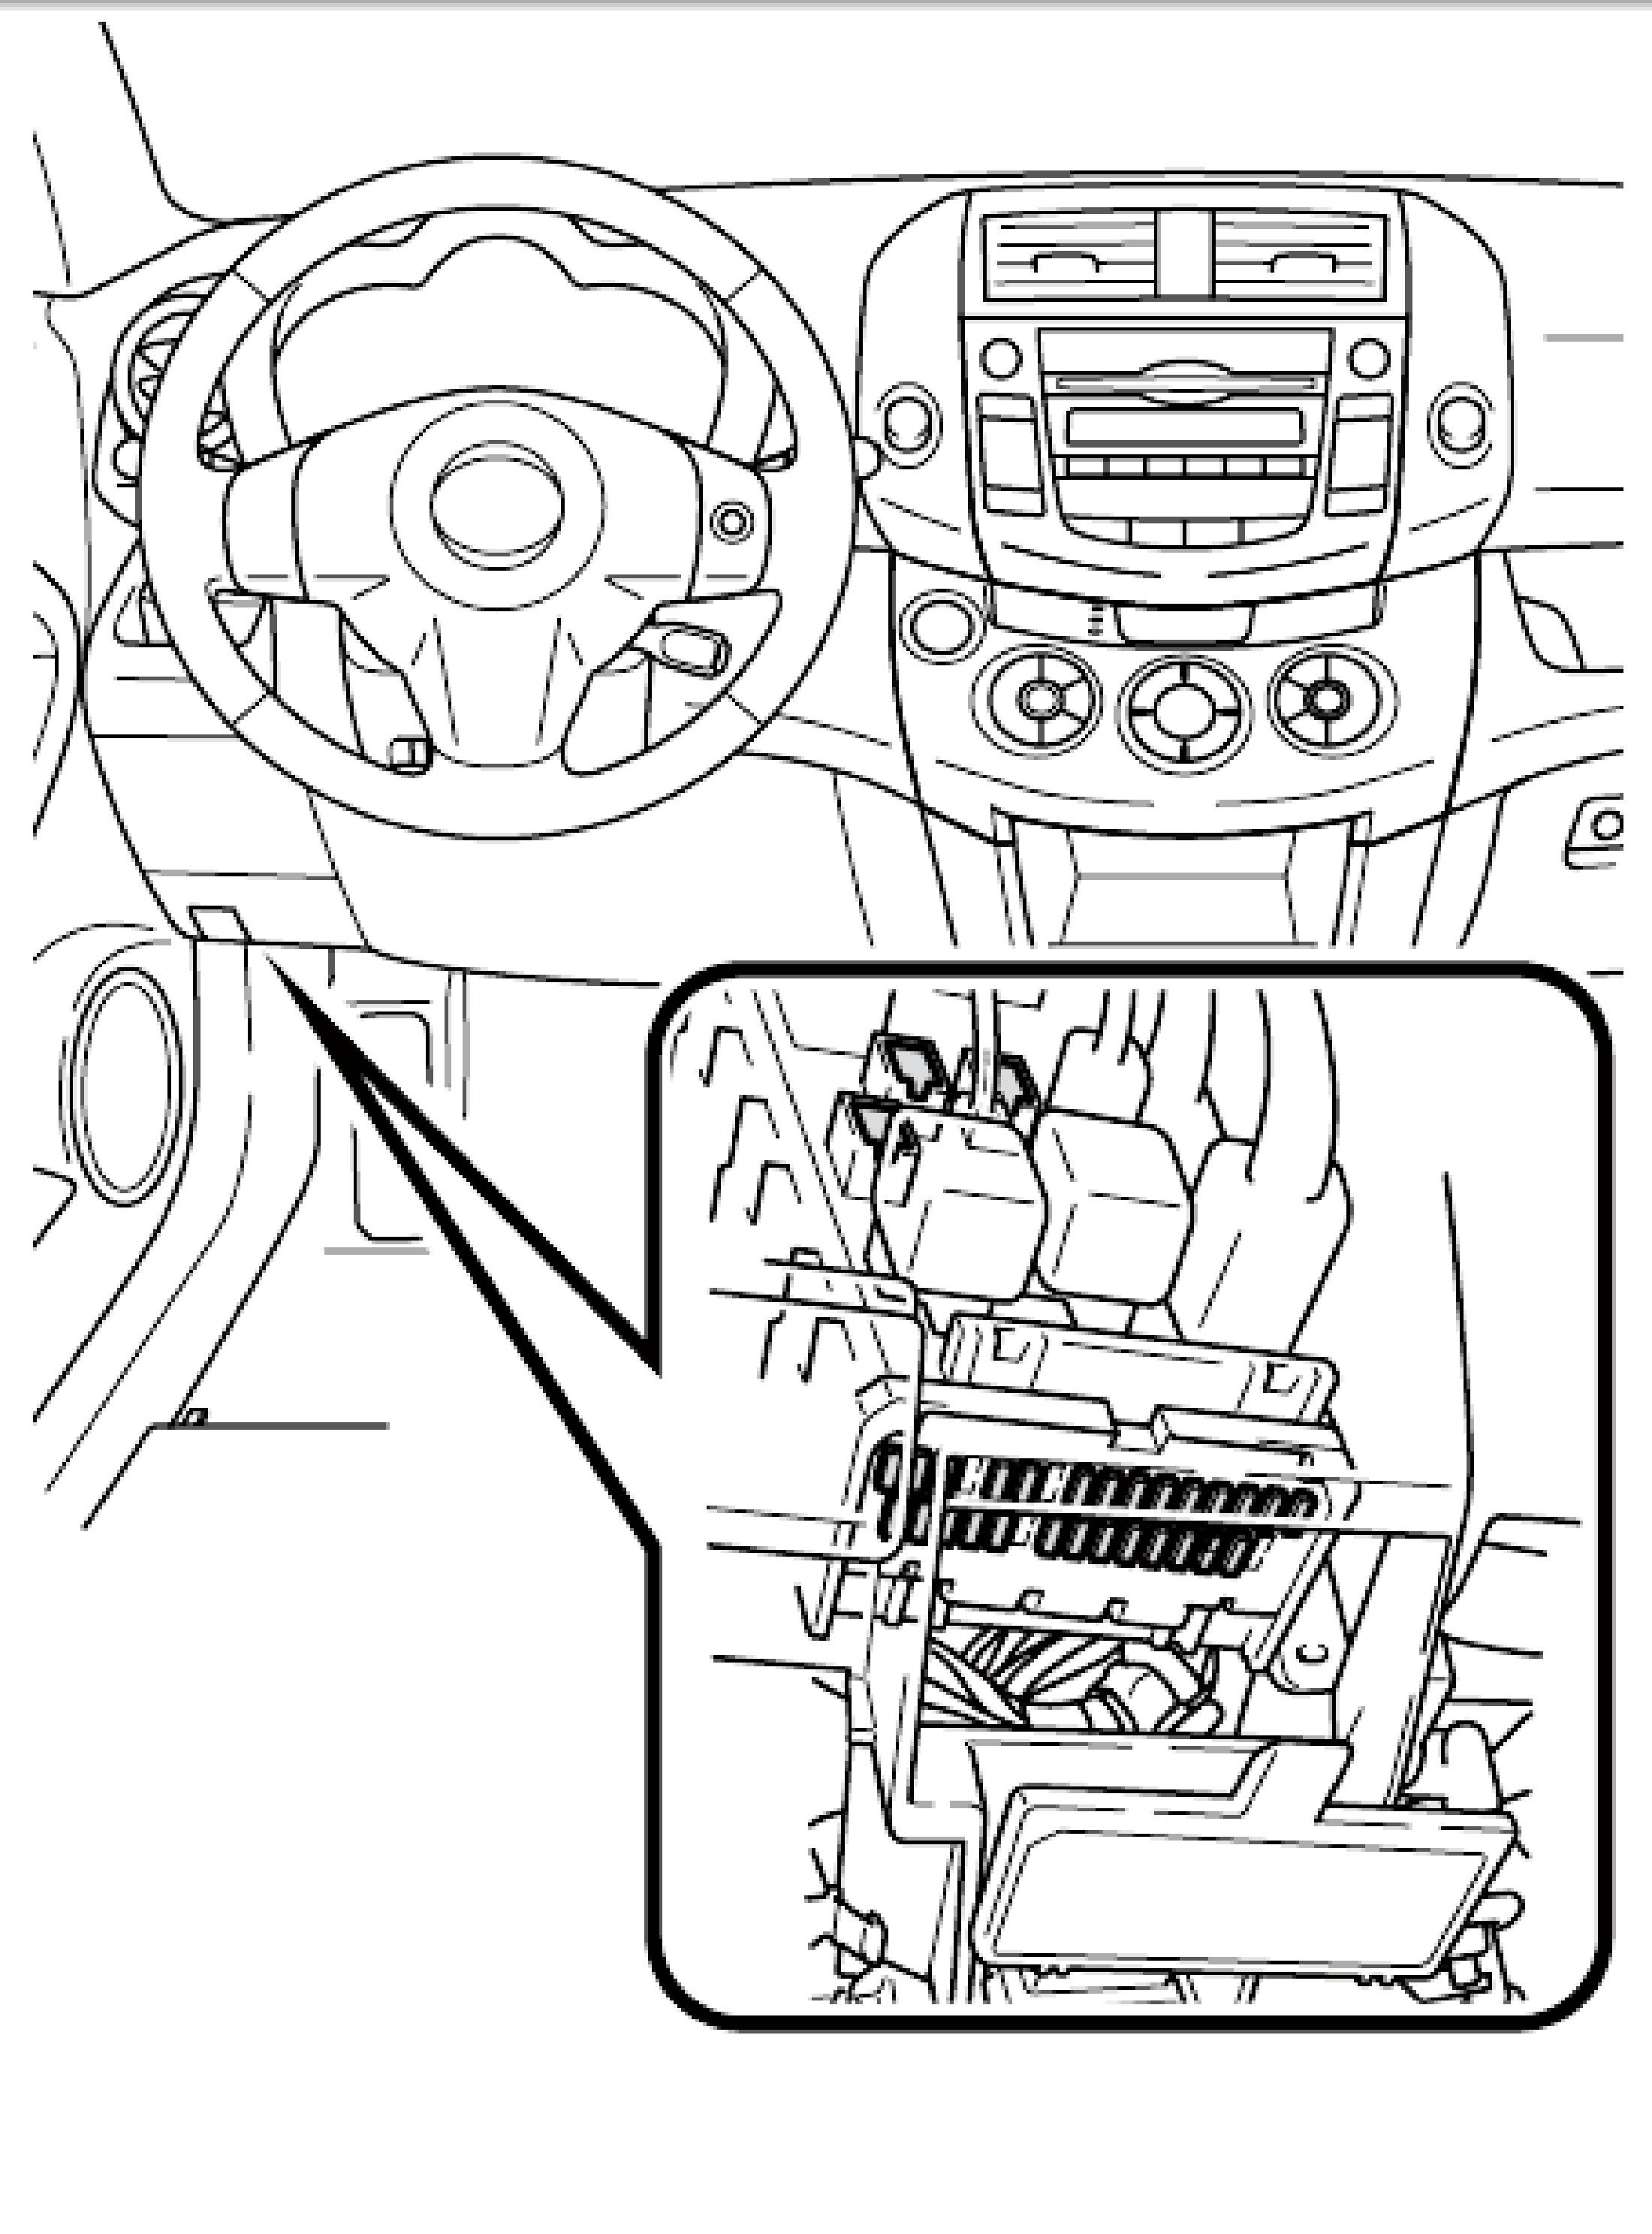 2002 toyota corolla fuse box diagram jYlSIZH 2002 toyota corolla fuse box diagram image details where is the fuse box in a 2002 toyota corolla at bayanpartner.co